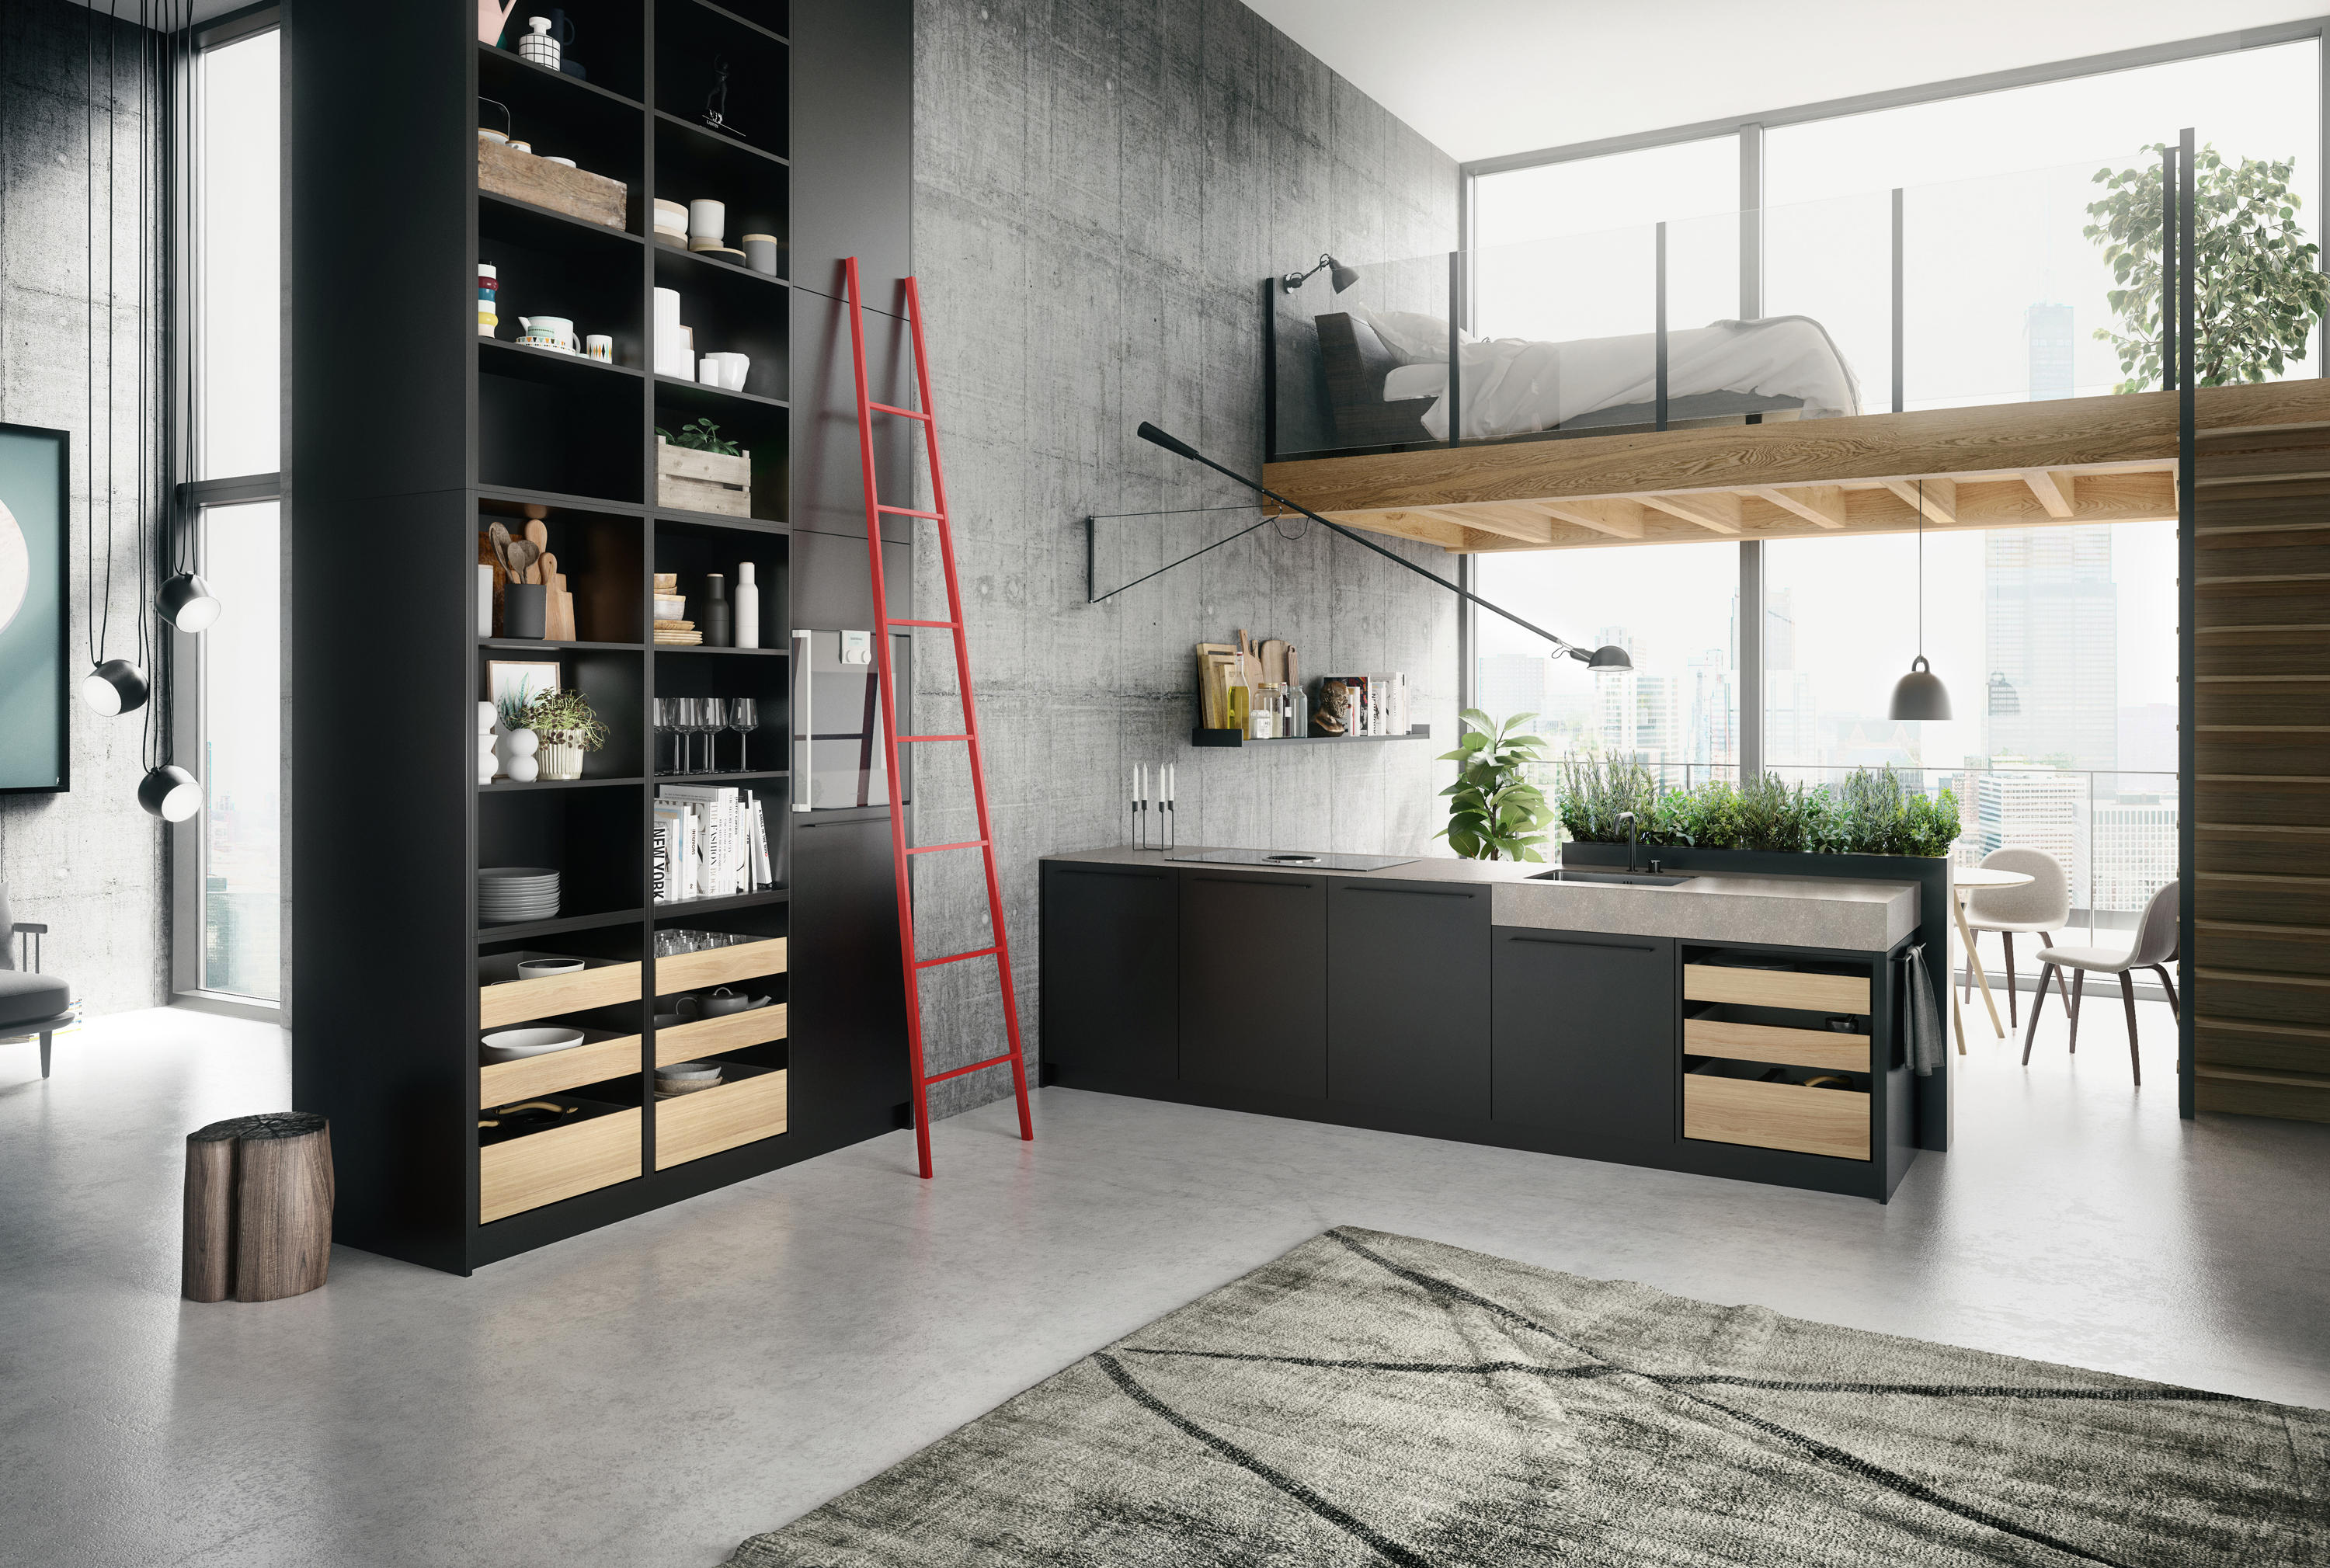 siematic se 8008 lm fitted kitchens from siematic. Black Bedroom Furniture Sets. Home Design Ideas